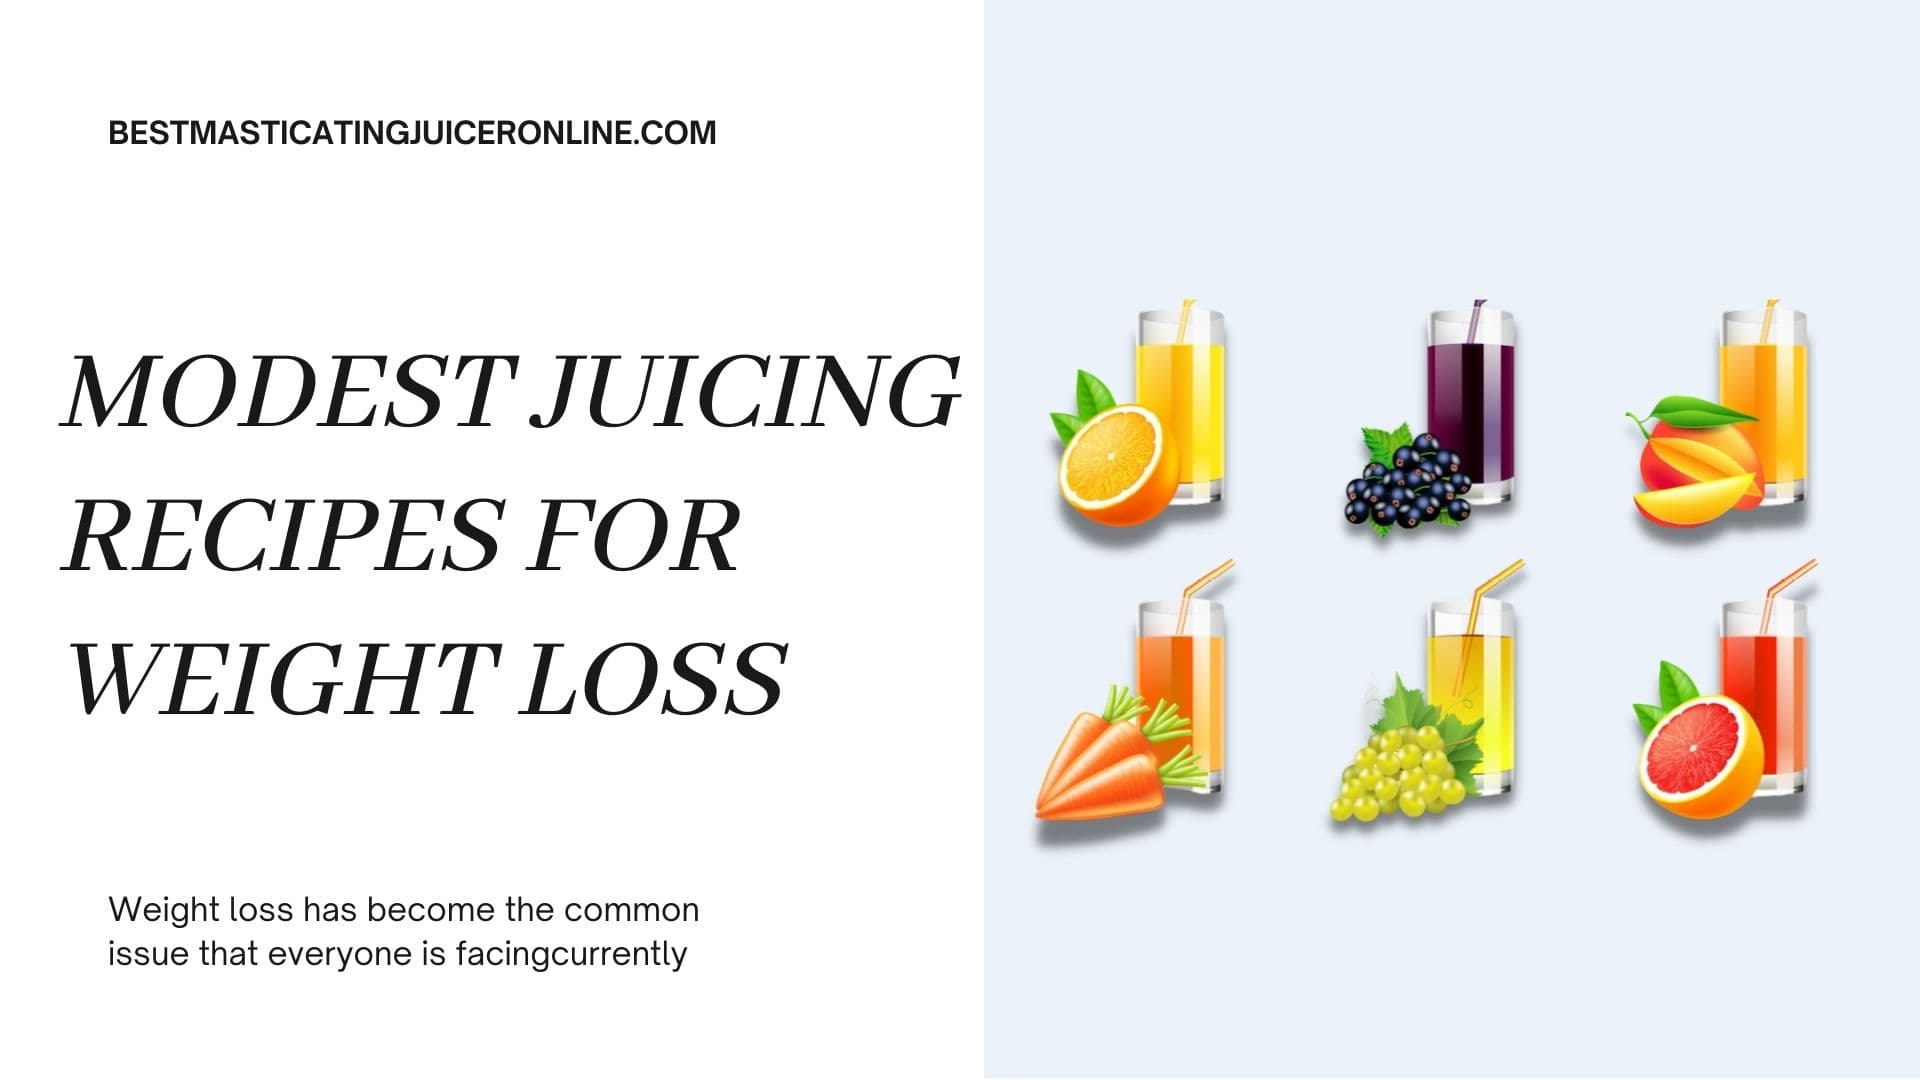 Modest juicing recipes for weight loss